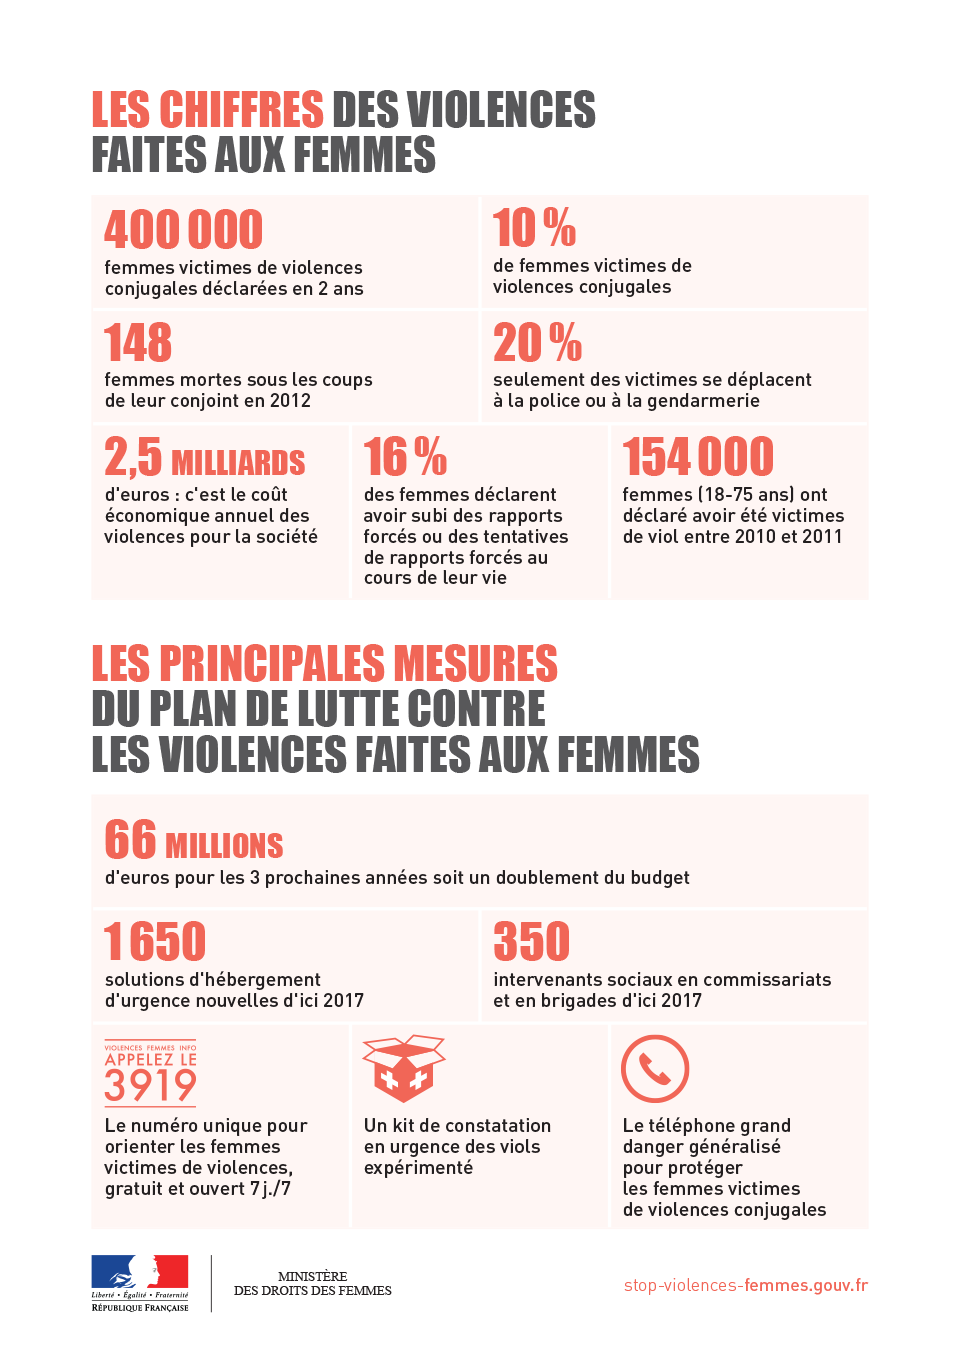 http://www.najat-vallaud-belkacem.com/wp-content/uploads/2013/11/plan-de-lutte-contre-les-violences.png